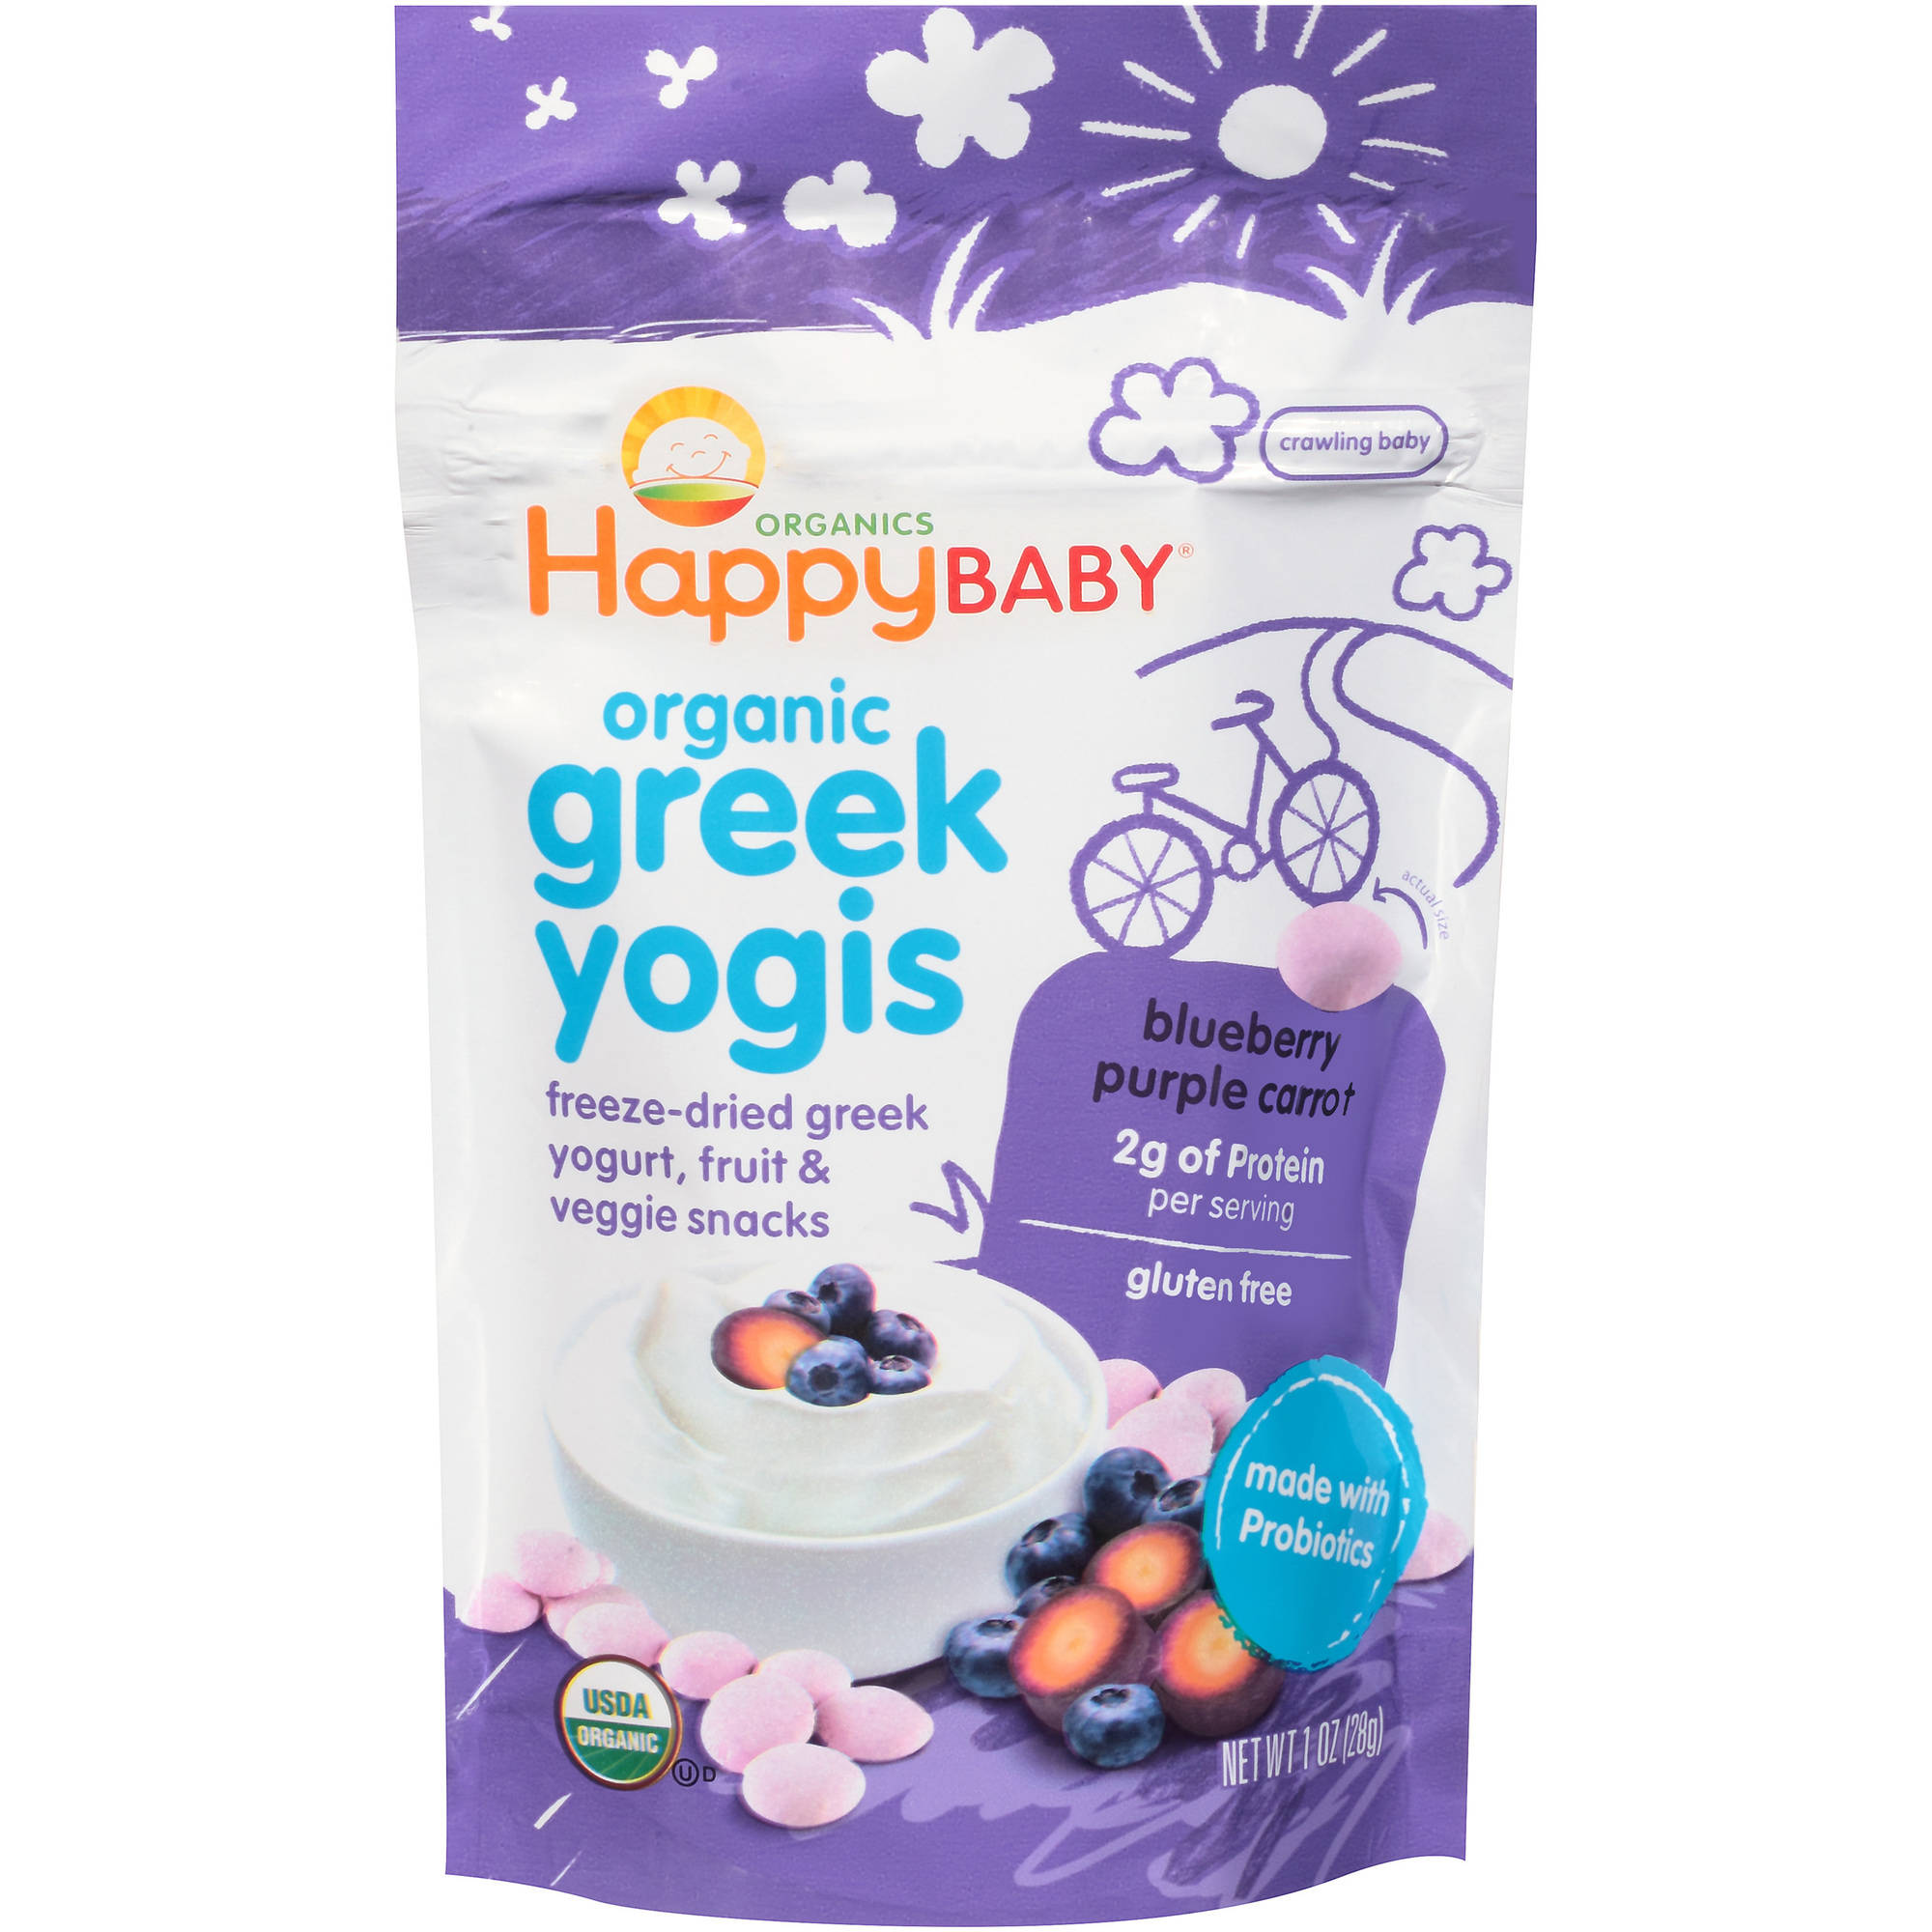 Happy Baby Greek Yogis, Organic Baby Food, Blueberry & Purple Carrot - 1oz bag, 1.0 OZ